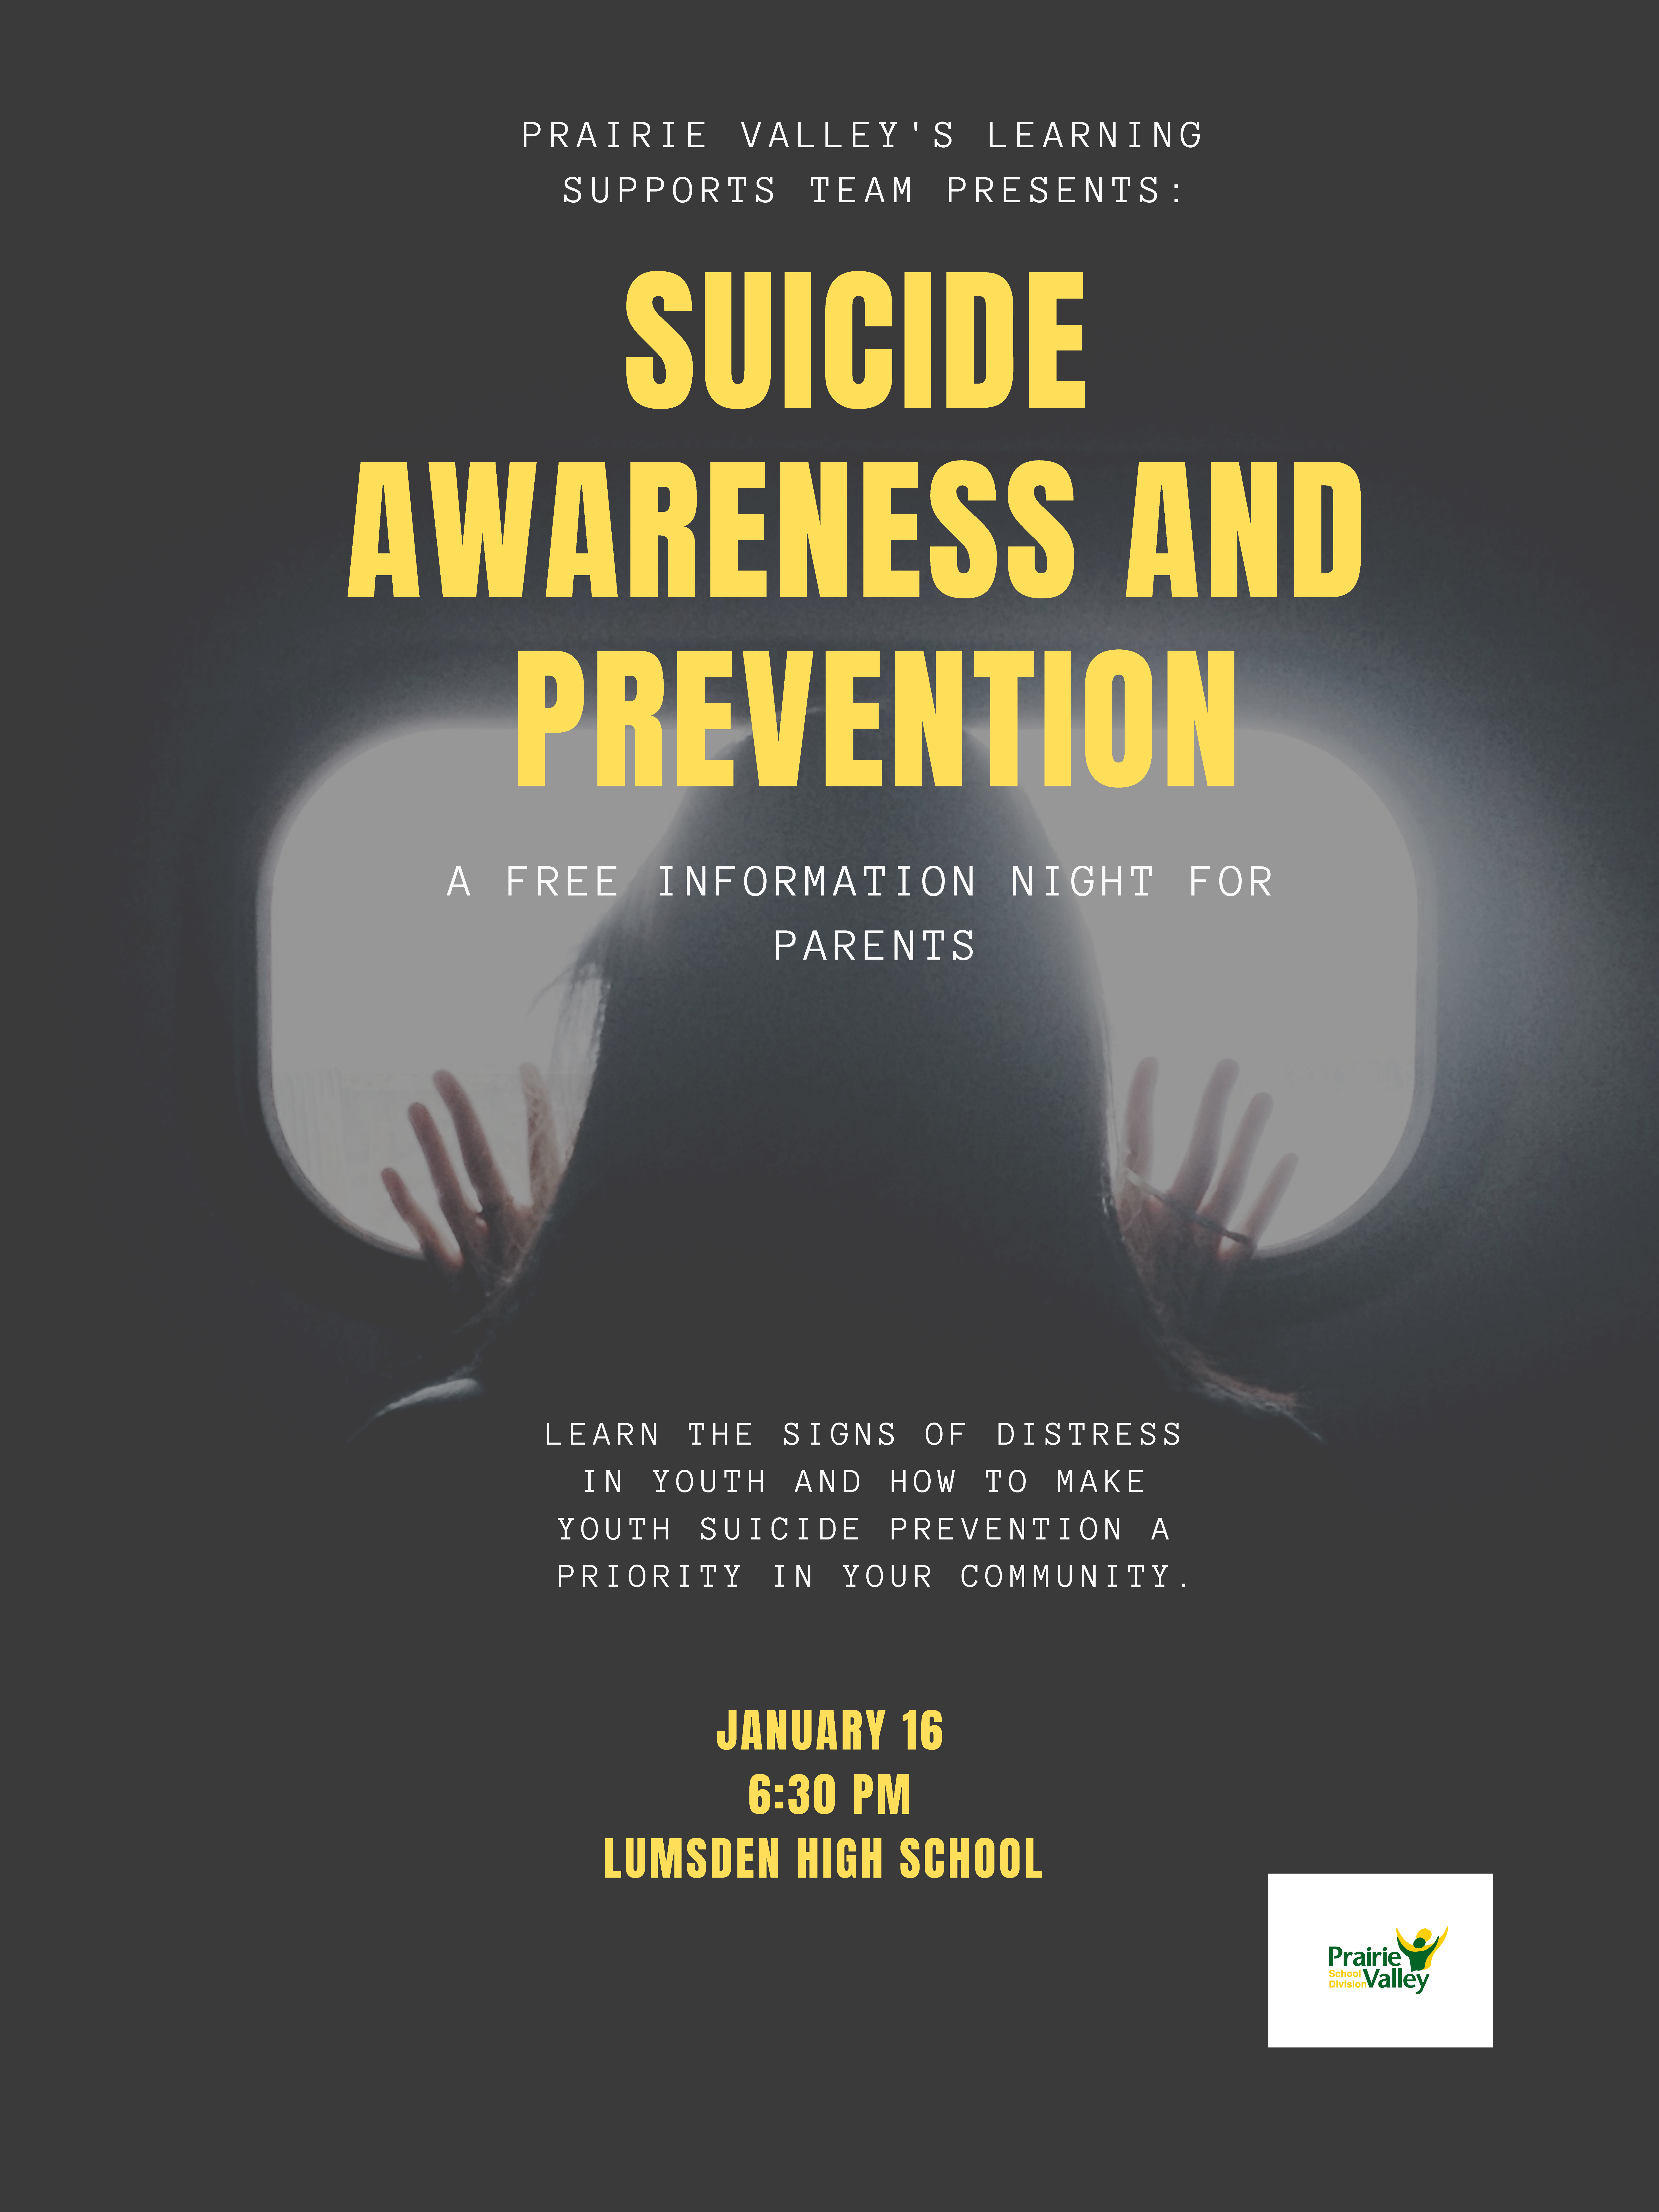 suicide awareness and prevention - Lumsden.png